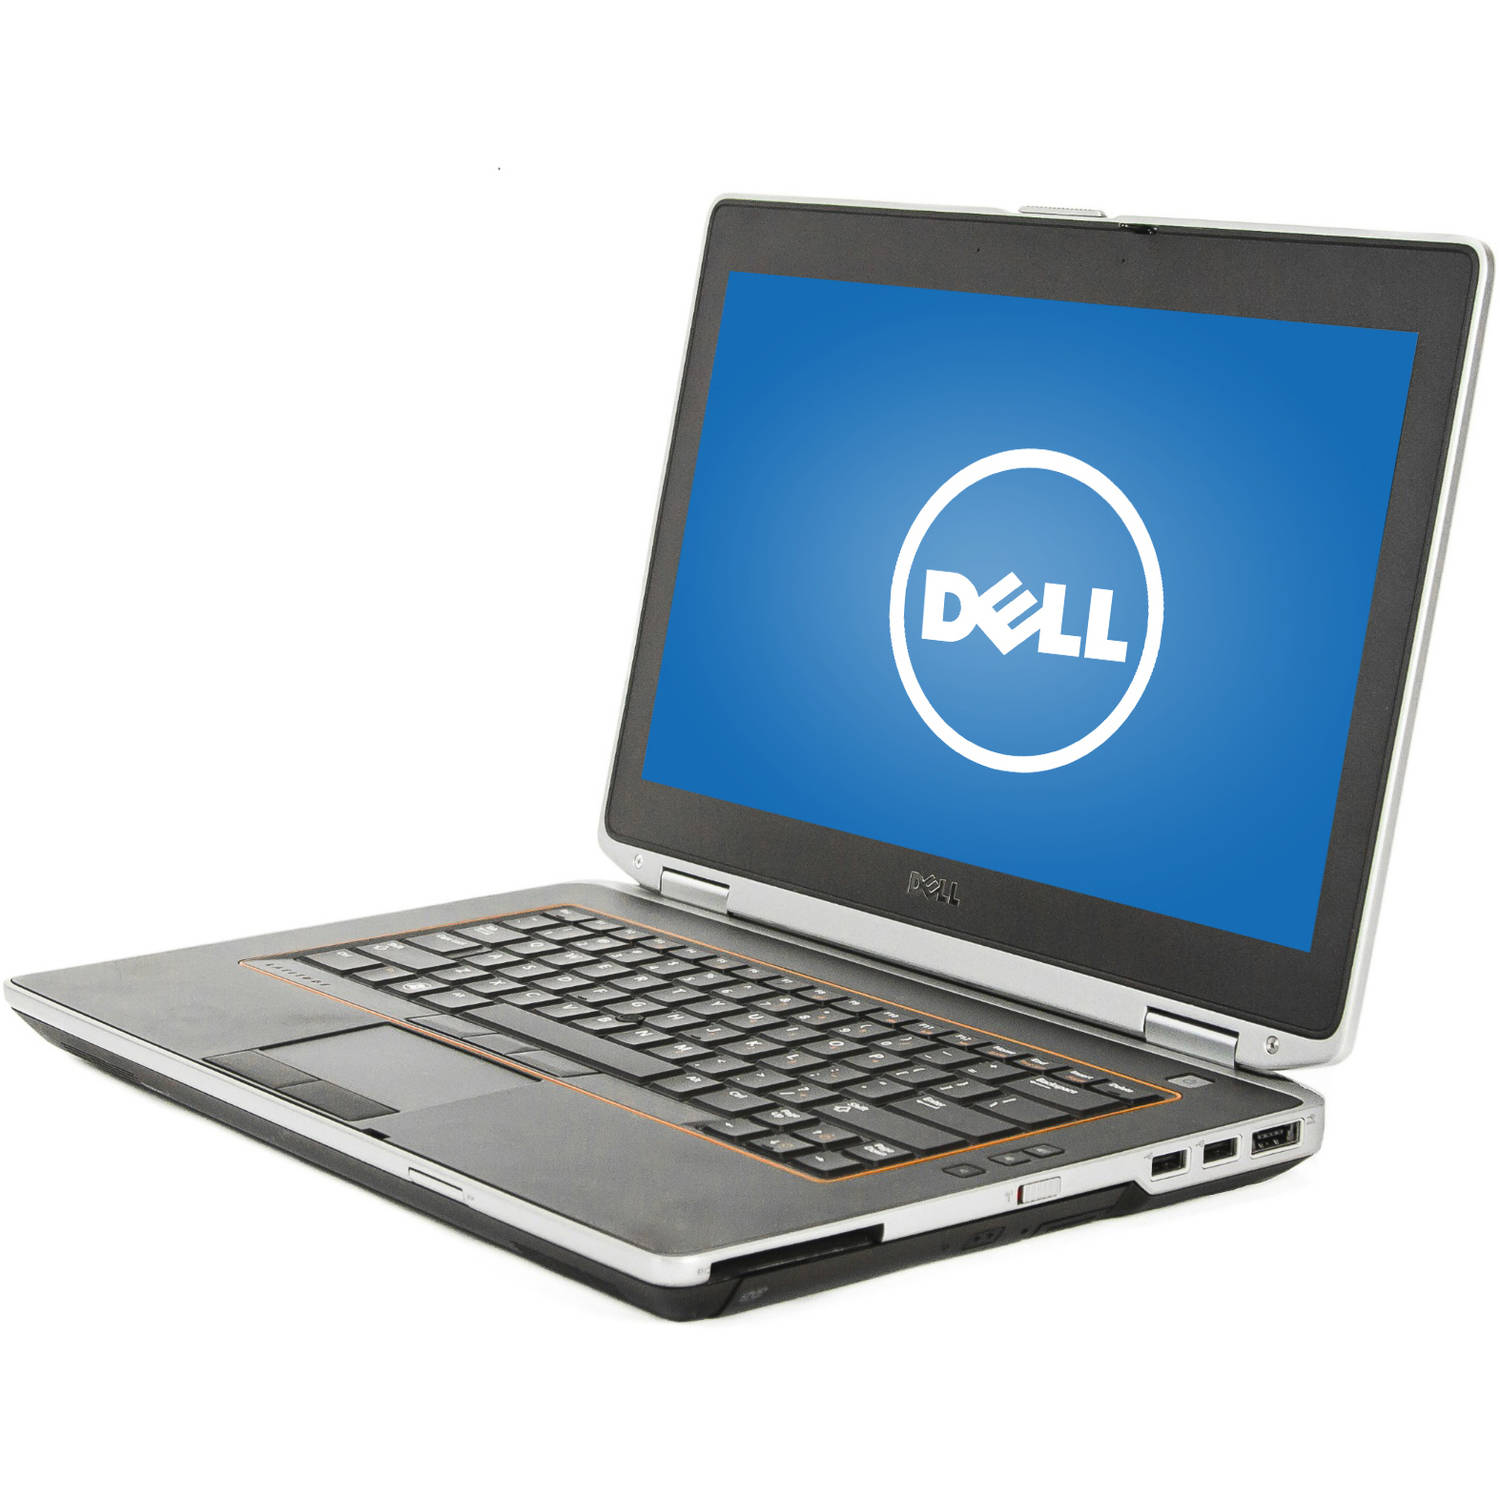 Refurbished Dell 14 Latitude E6420 Laptop PC with Intel Core i5 - 2520M Processor, 4GB Memory, 320GB Hard Drive and Windows 10 Pro